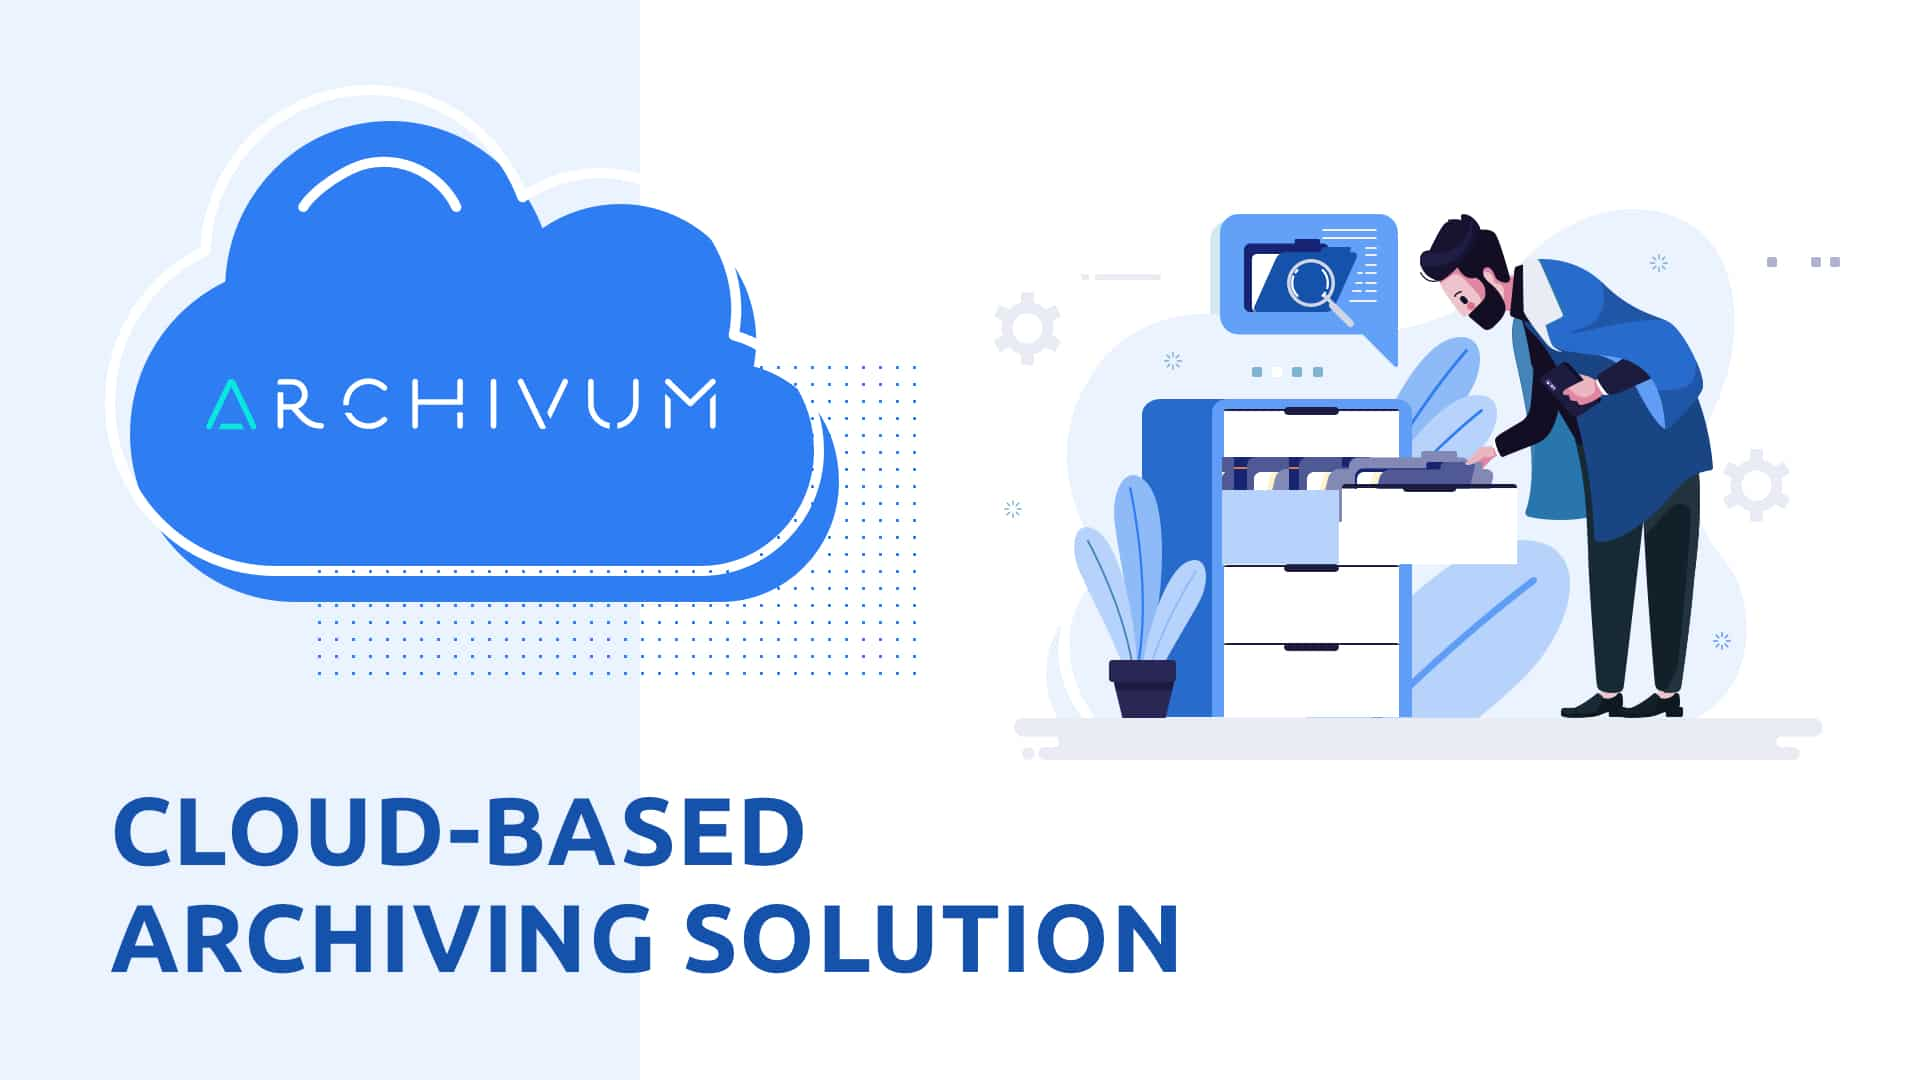 Cloud Data Archiving - Cloud-based Archiving Solution - MobiLab